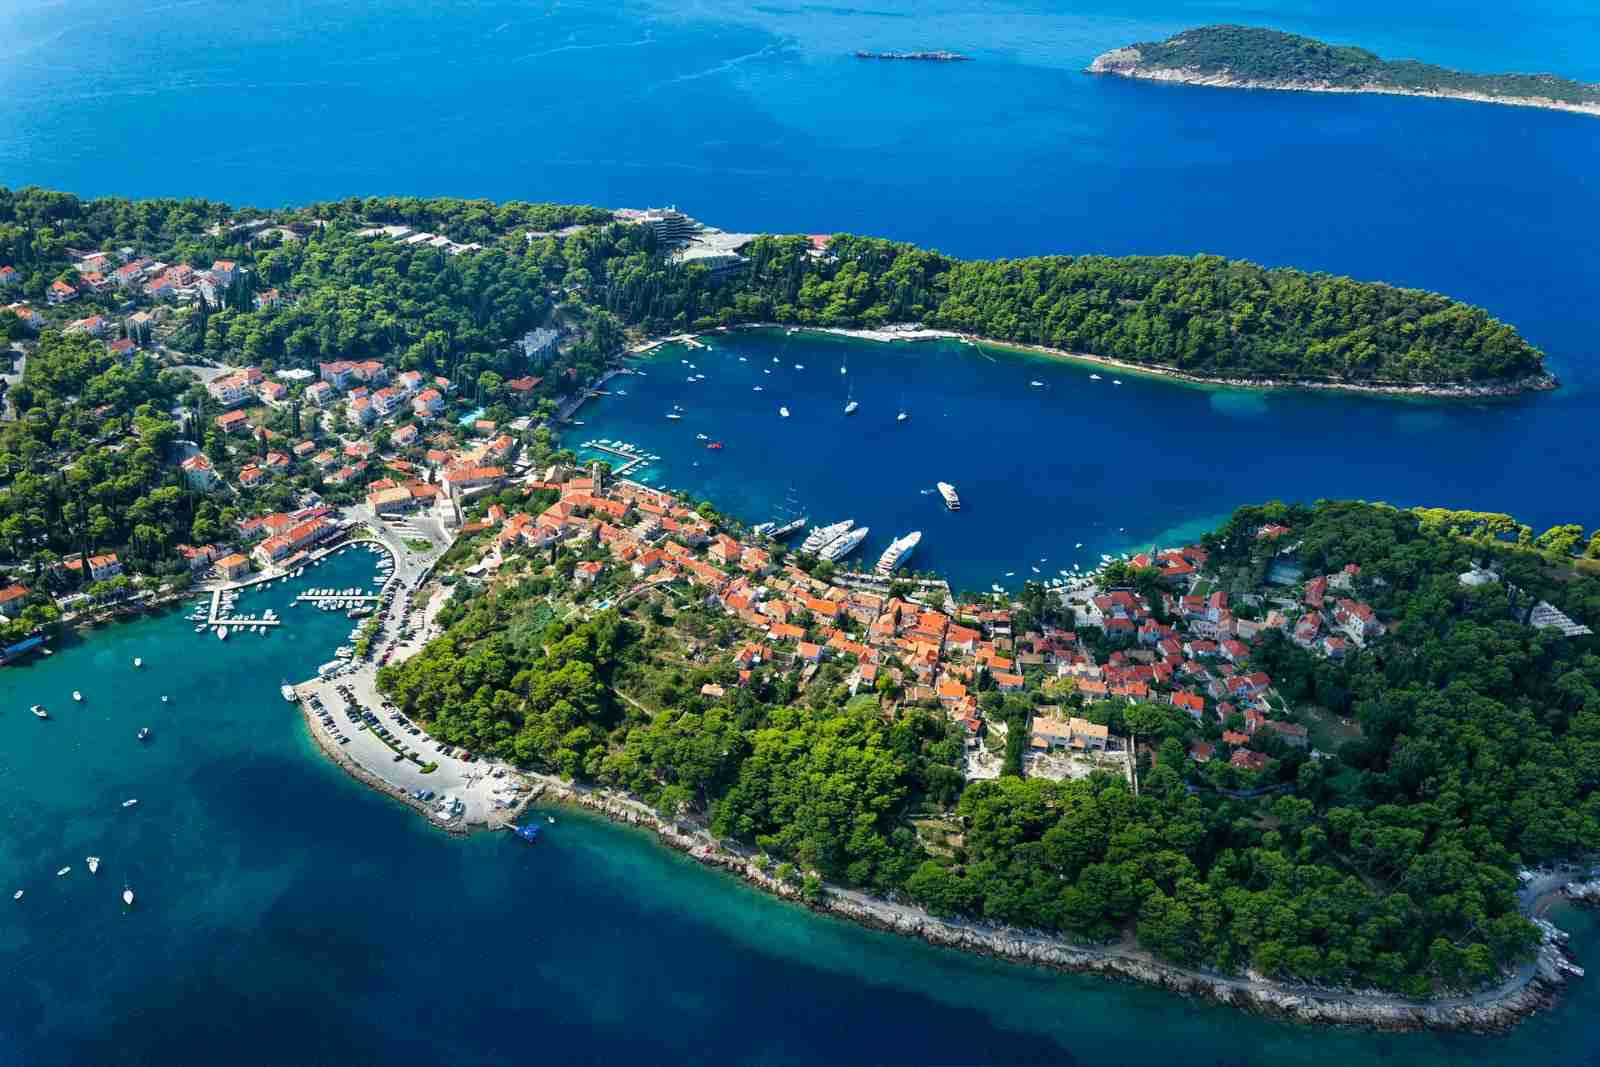 Cavtat, Croatia. (Photo by Goran Safarek/EyeEm/Getty Images)